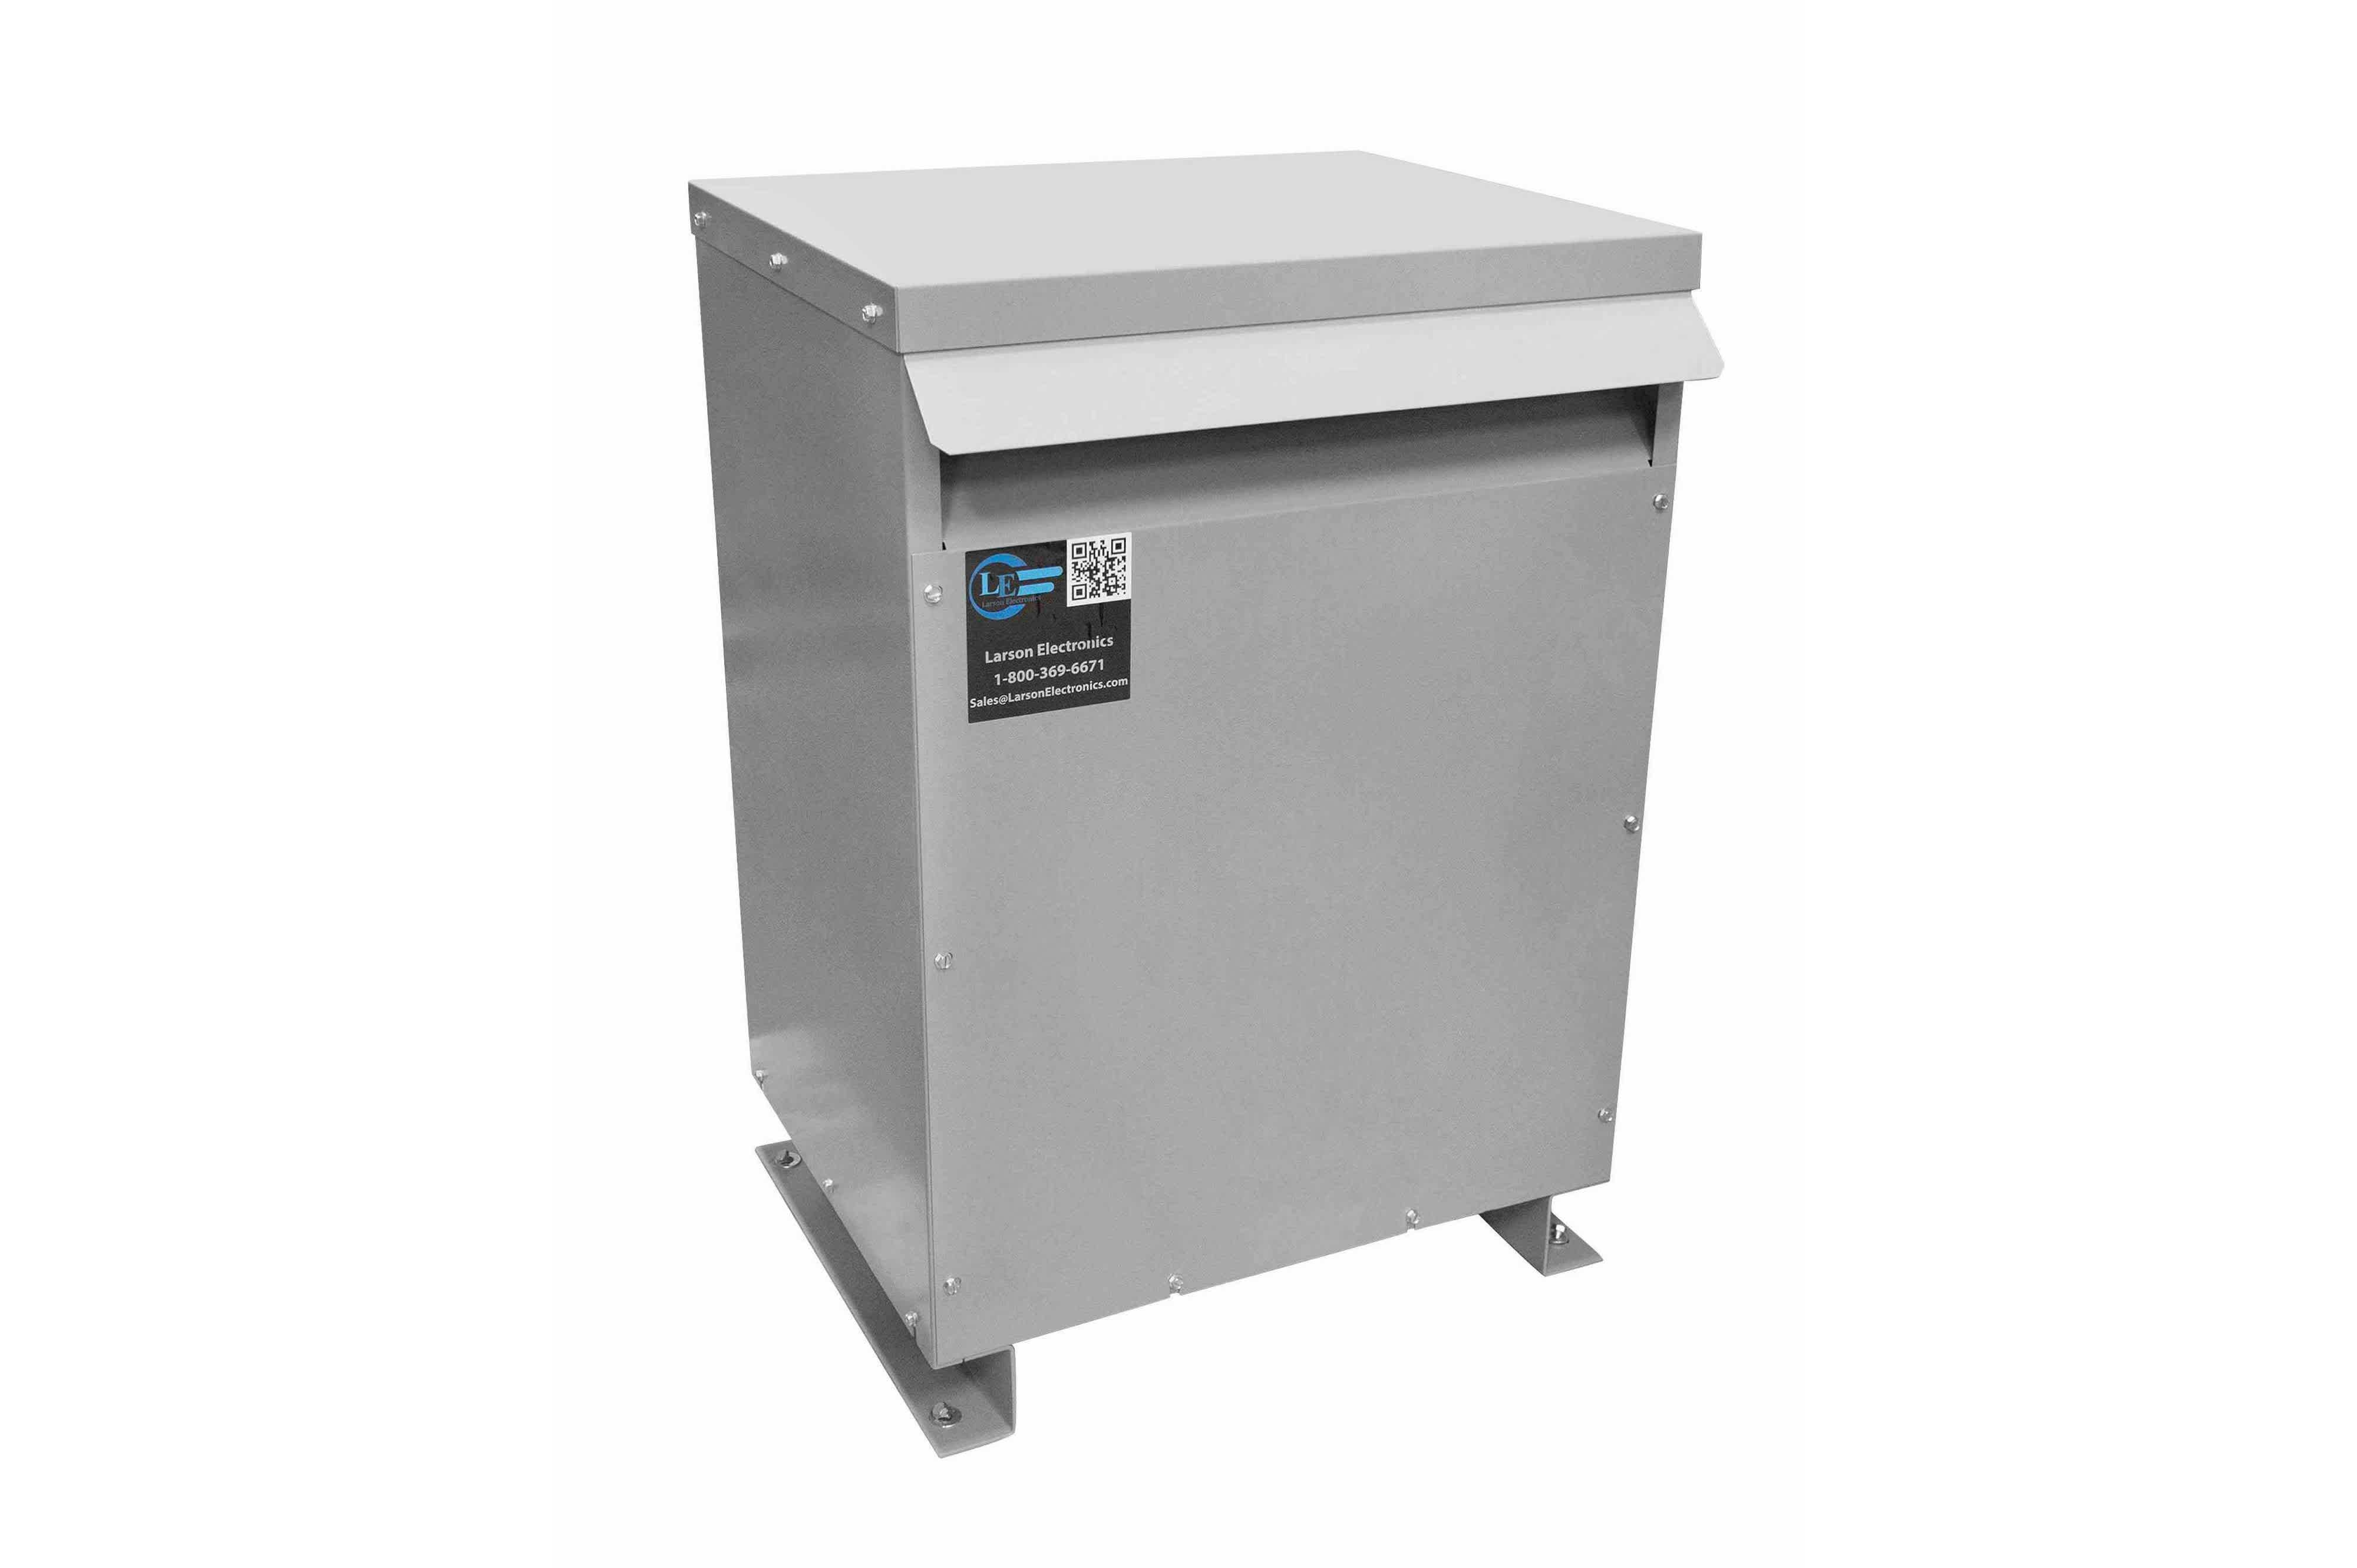 25 kVA 3PH Isolation Transformer, 480V Wye Primary, 575Y/332 Wye-N Secondary, N3R, Ventilated, 60 Hz